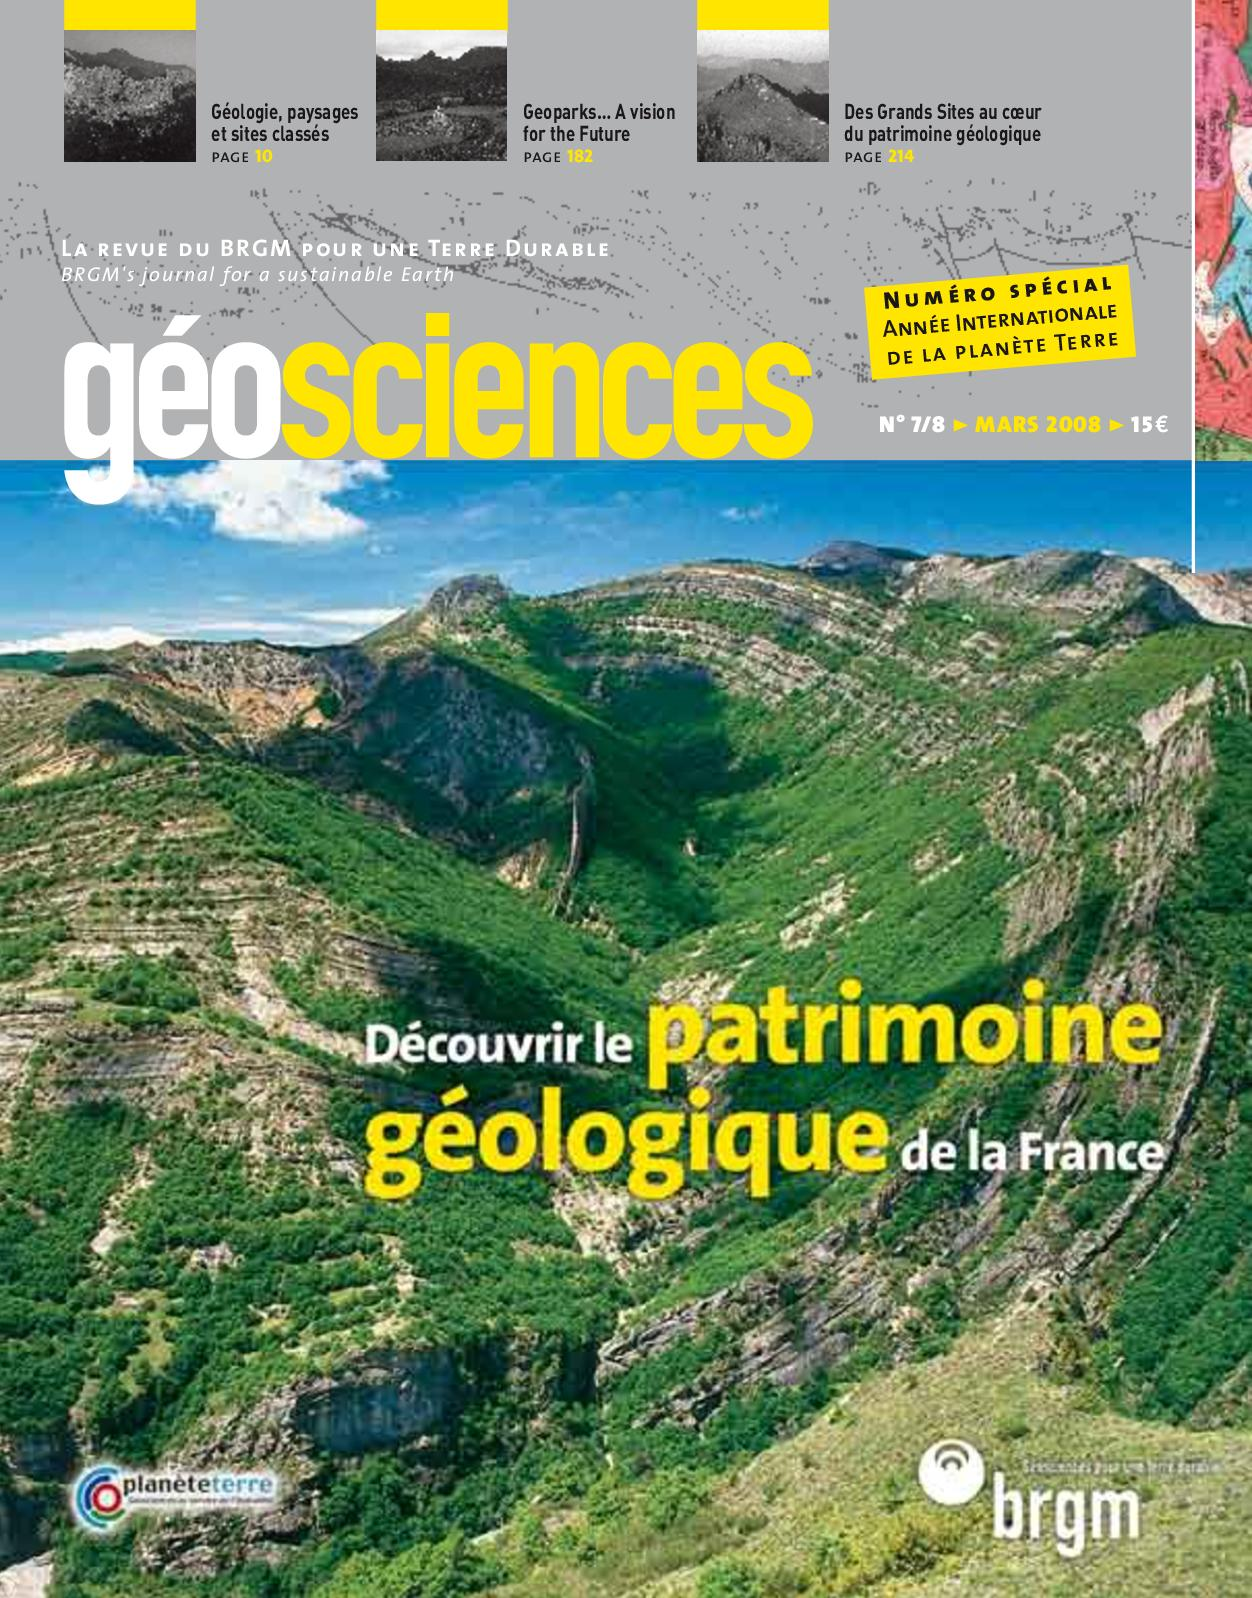 Géologique section transversale relative datant